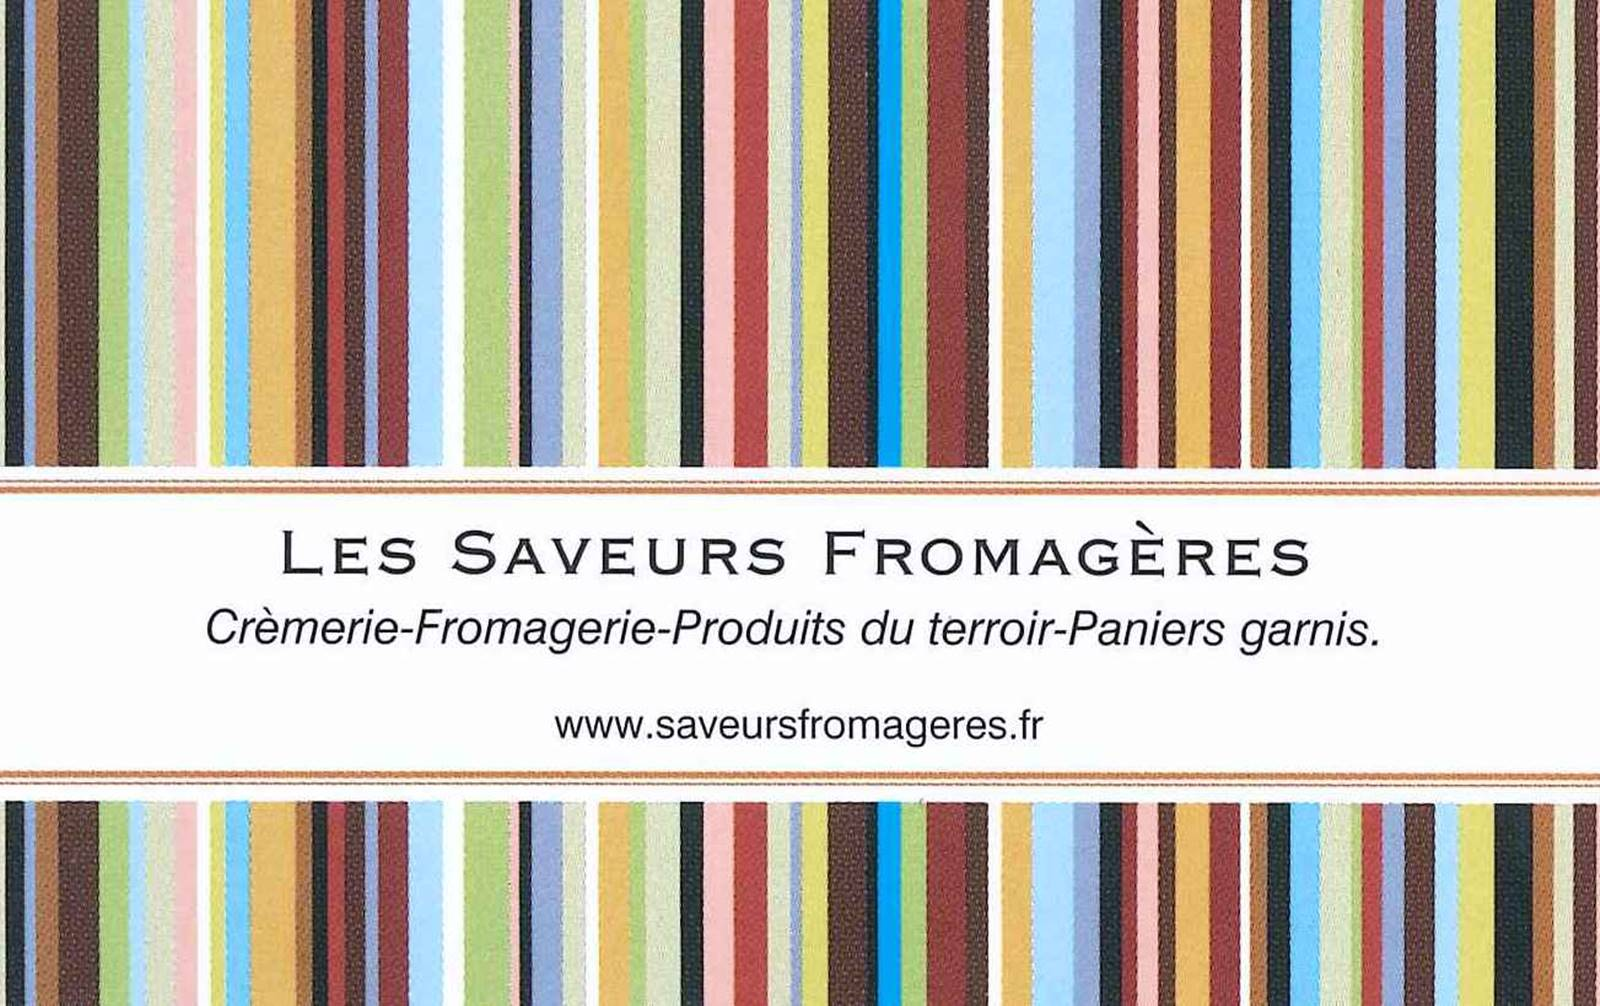 saveurs-fromageres.jpg